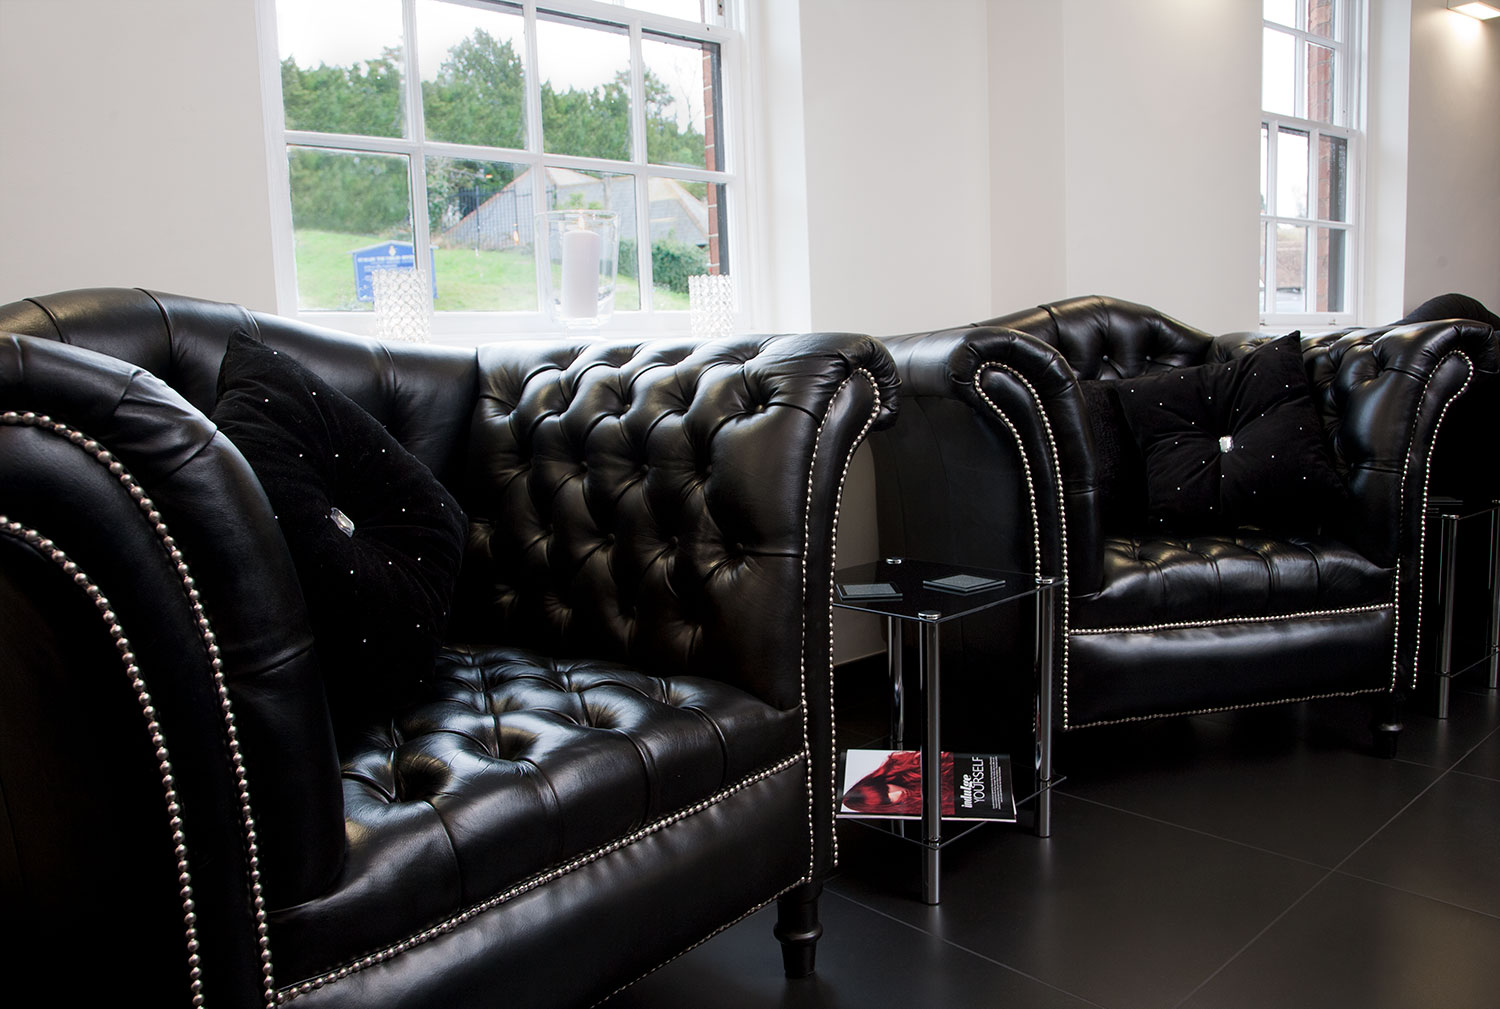 leather_chairs.jpg